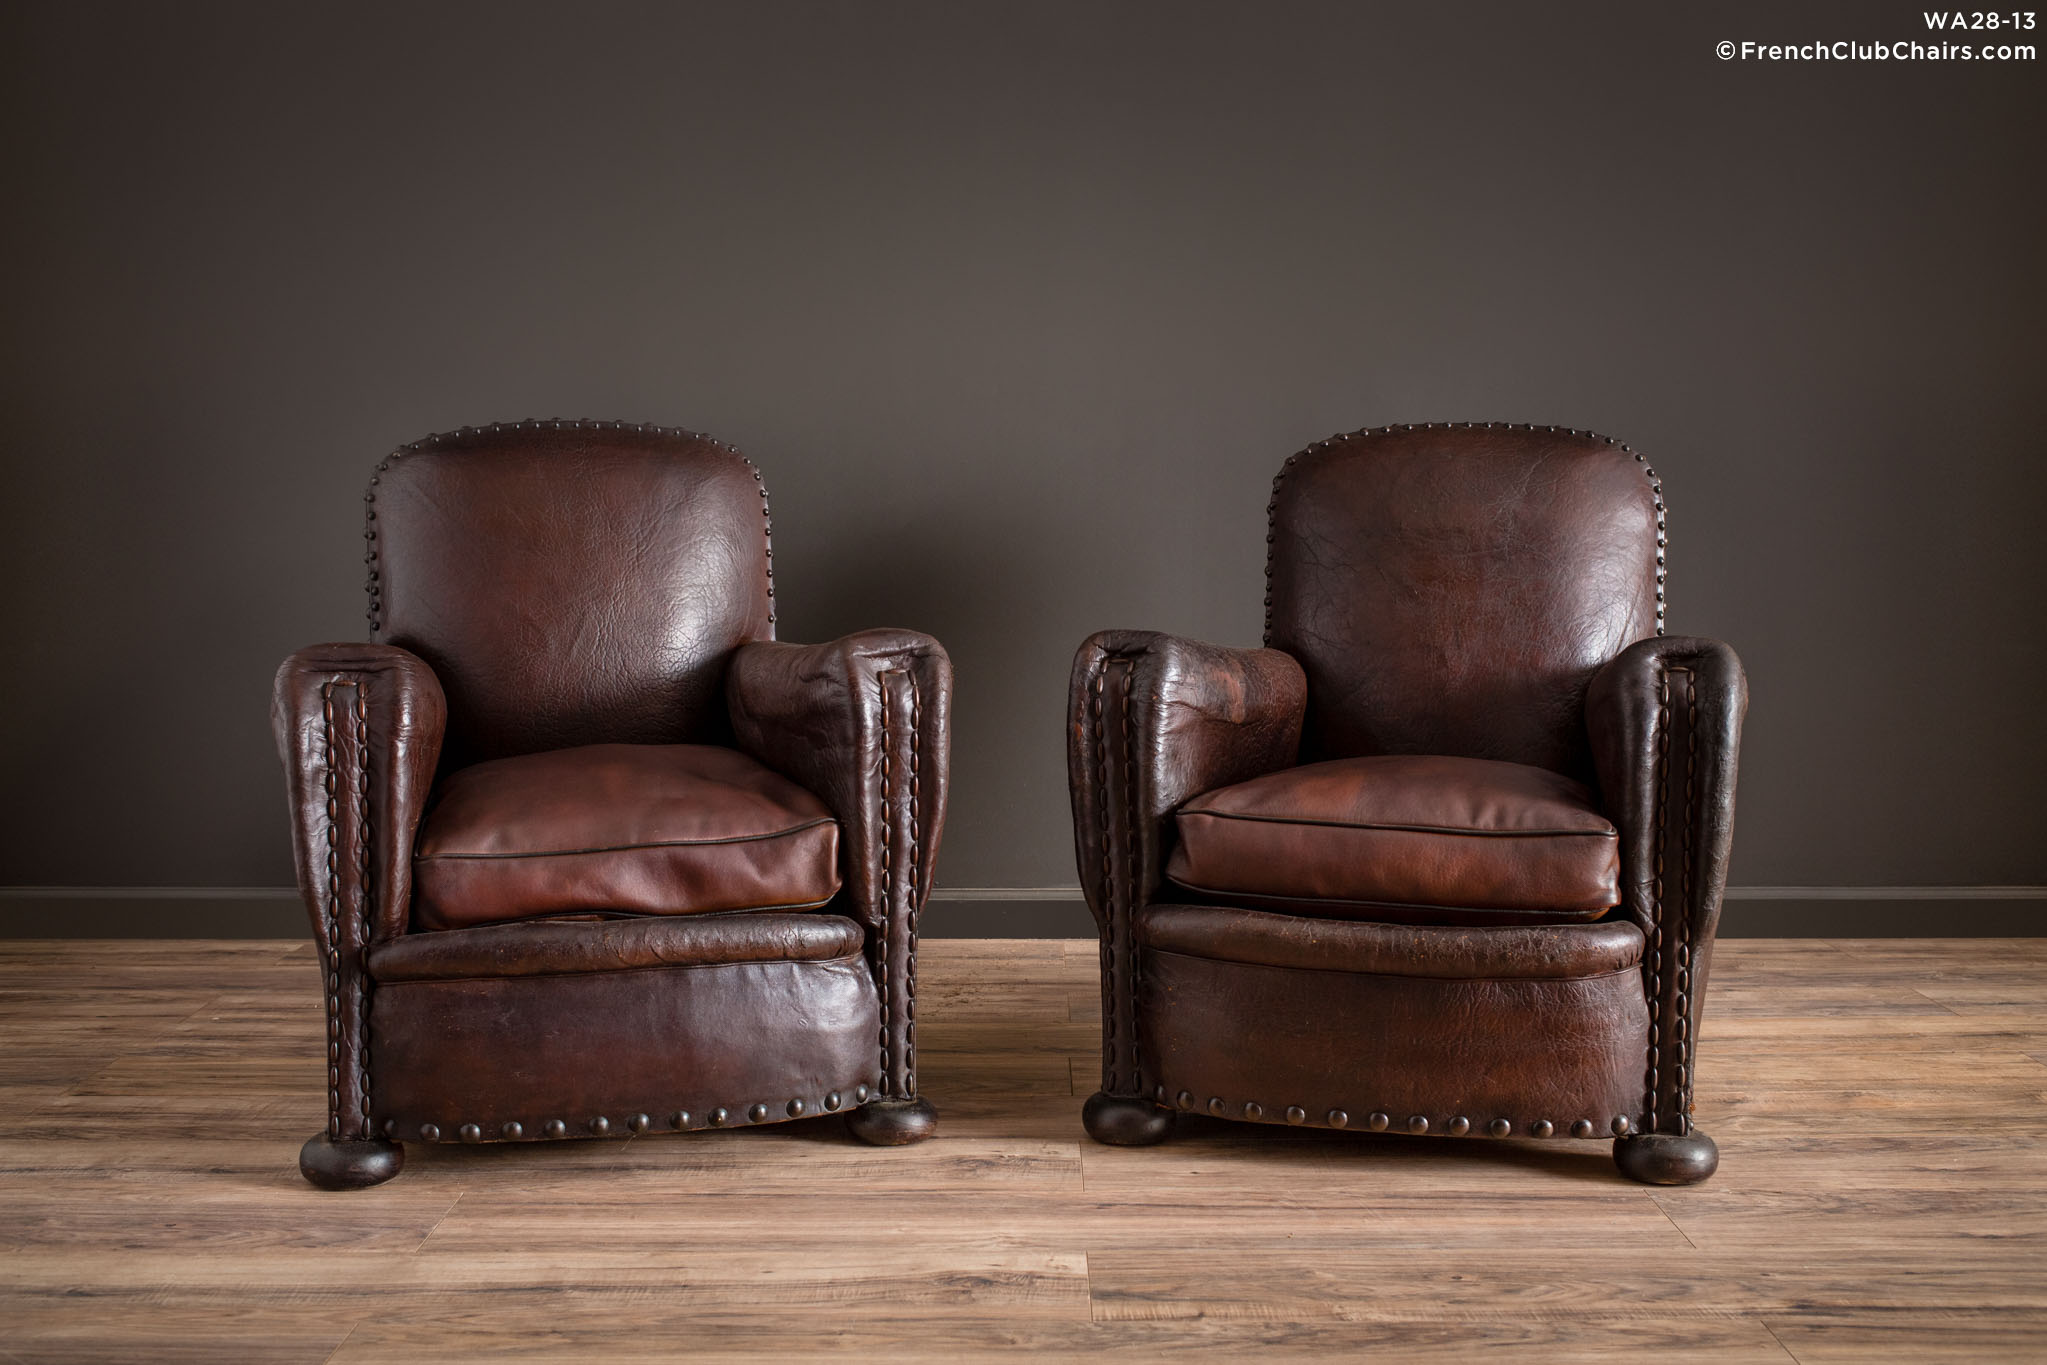 WA_28-13_St_Imoge_Cinema_Nailhead_Pair_R_1TQ1-williams-antiks-leather-french-club-chair-wa_fcccom